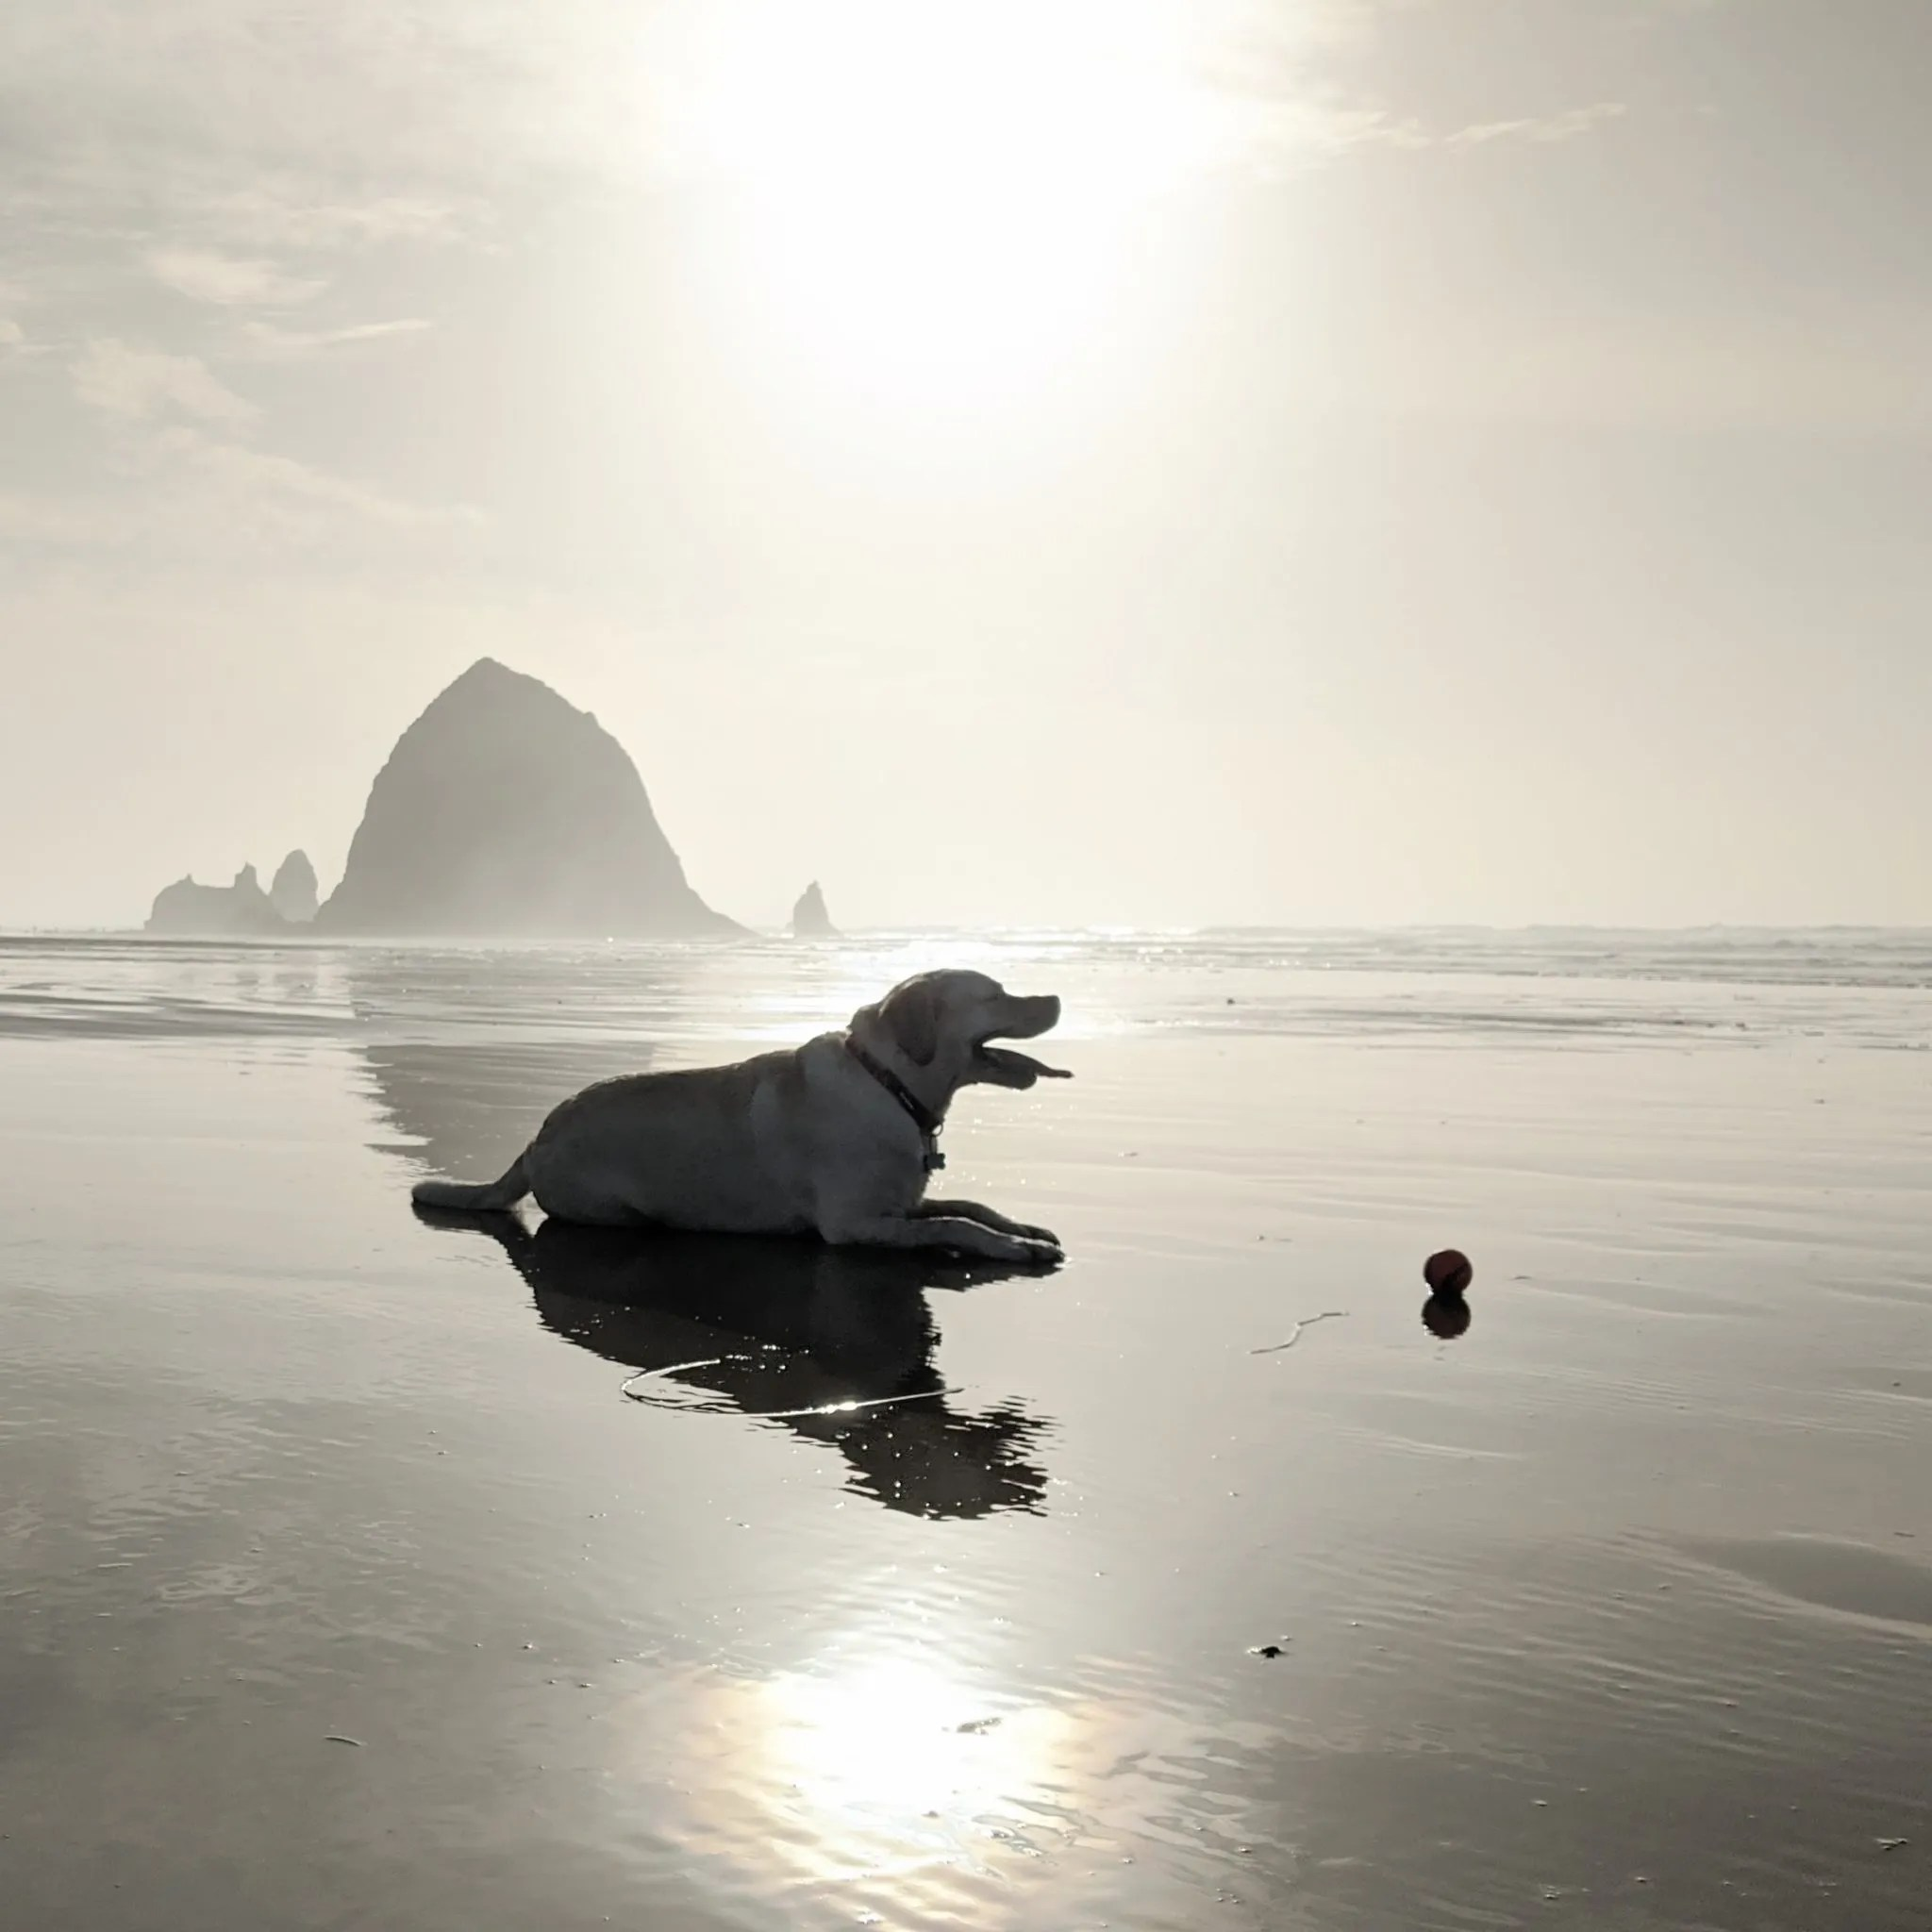 Gilligan on Cannon Beach with Haystack Rock in the distance